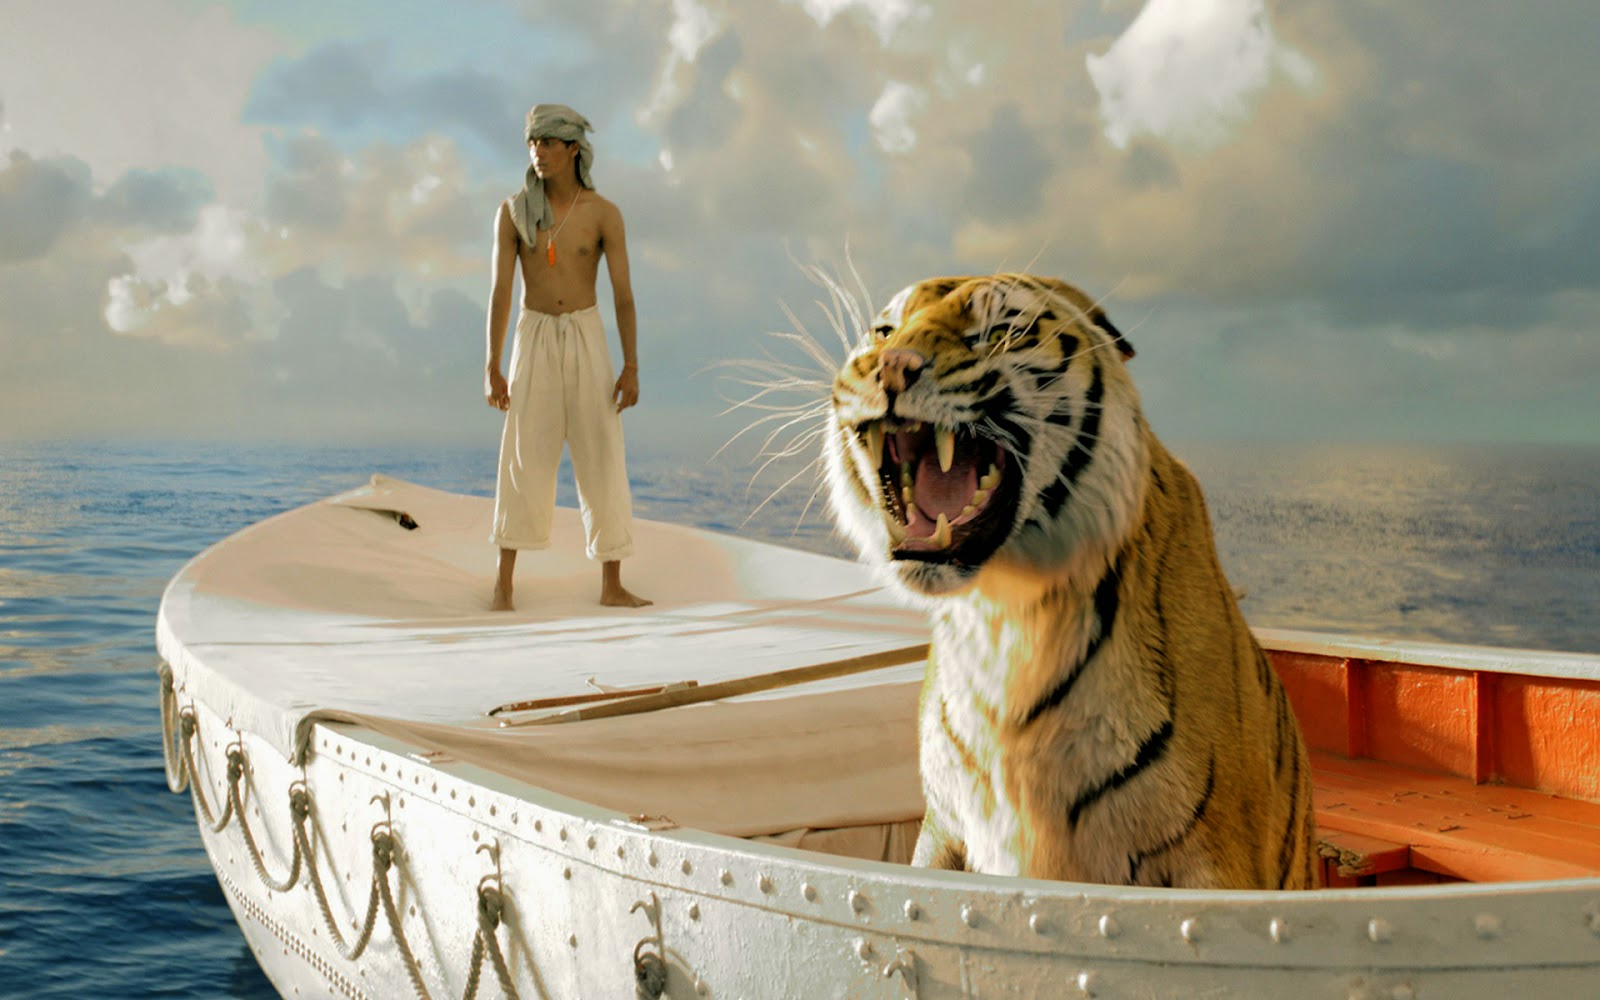 Life of pi 2012 a movie collection for Life of pi cast